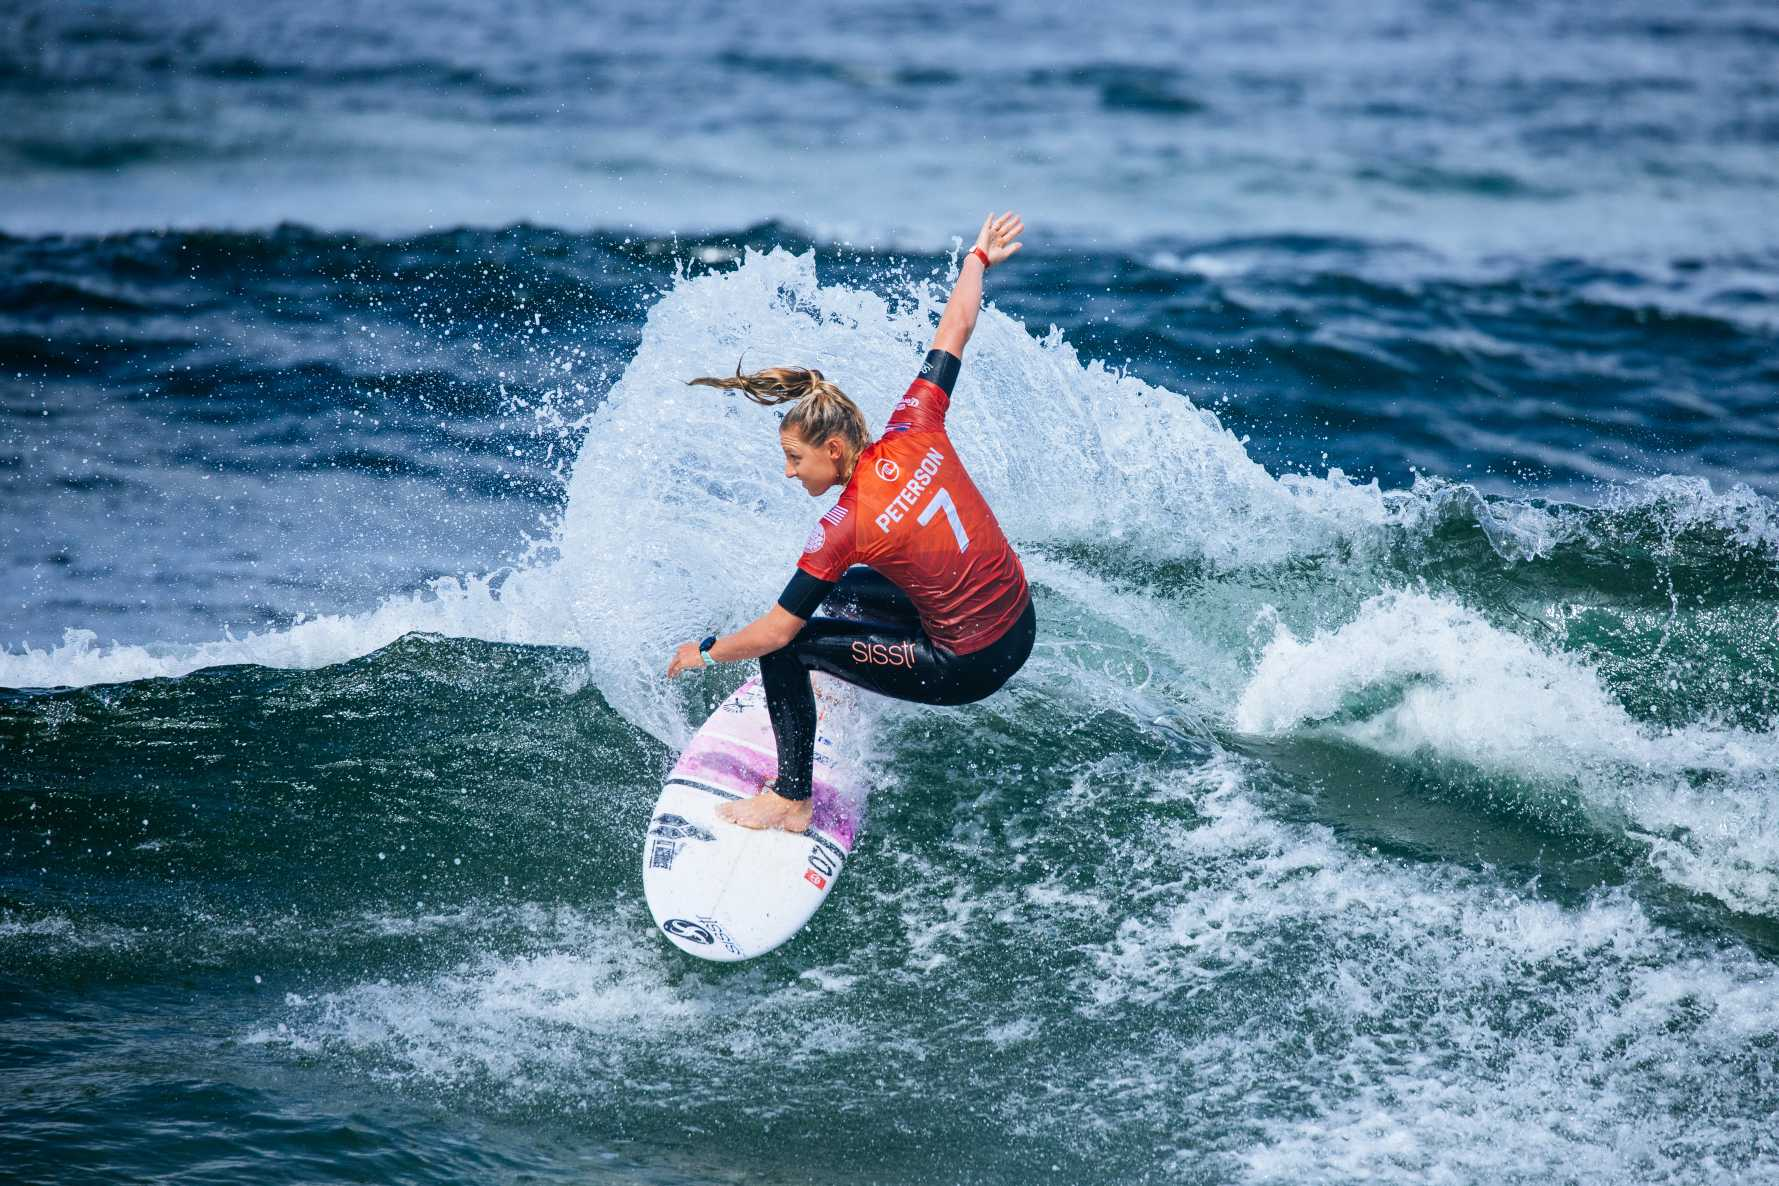 HIGHLIGHTS DAY 1 CT Leaders Florence And Wright Front Action-Packed Opening Day In Newcastle